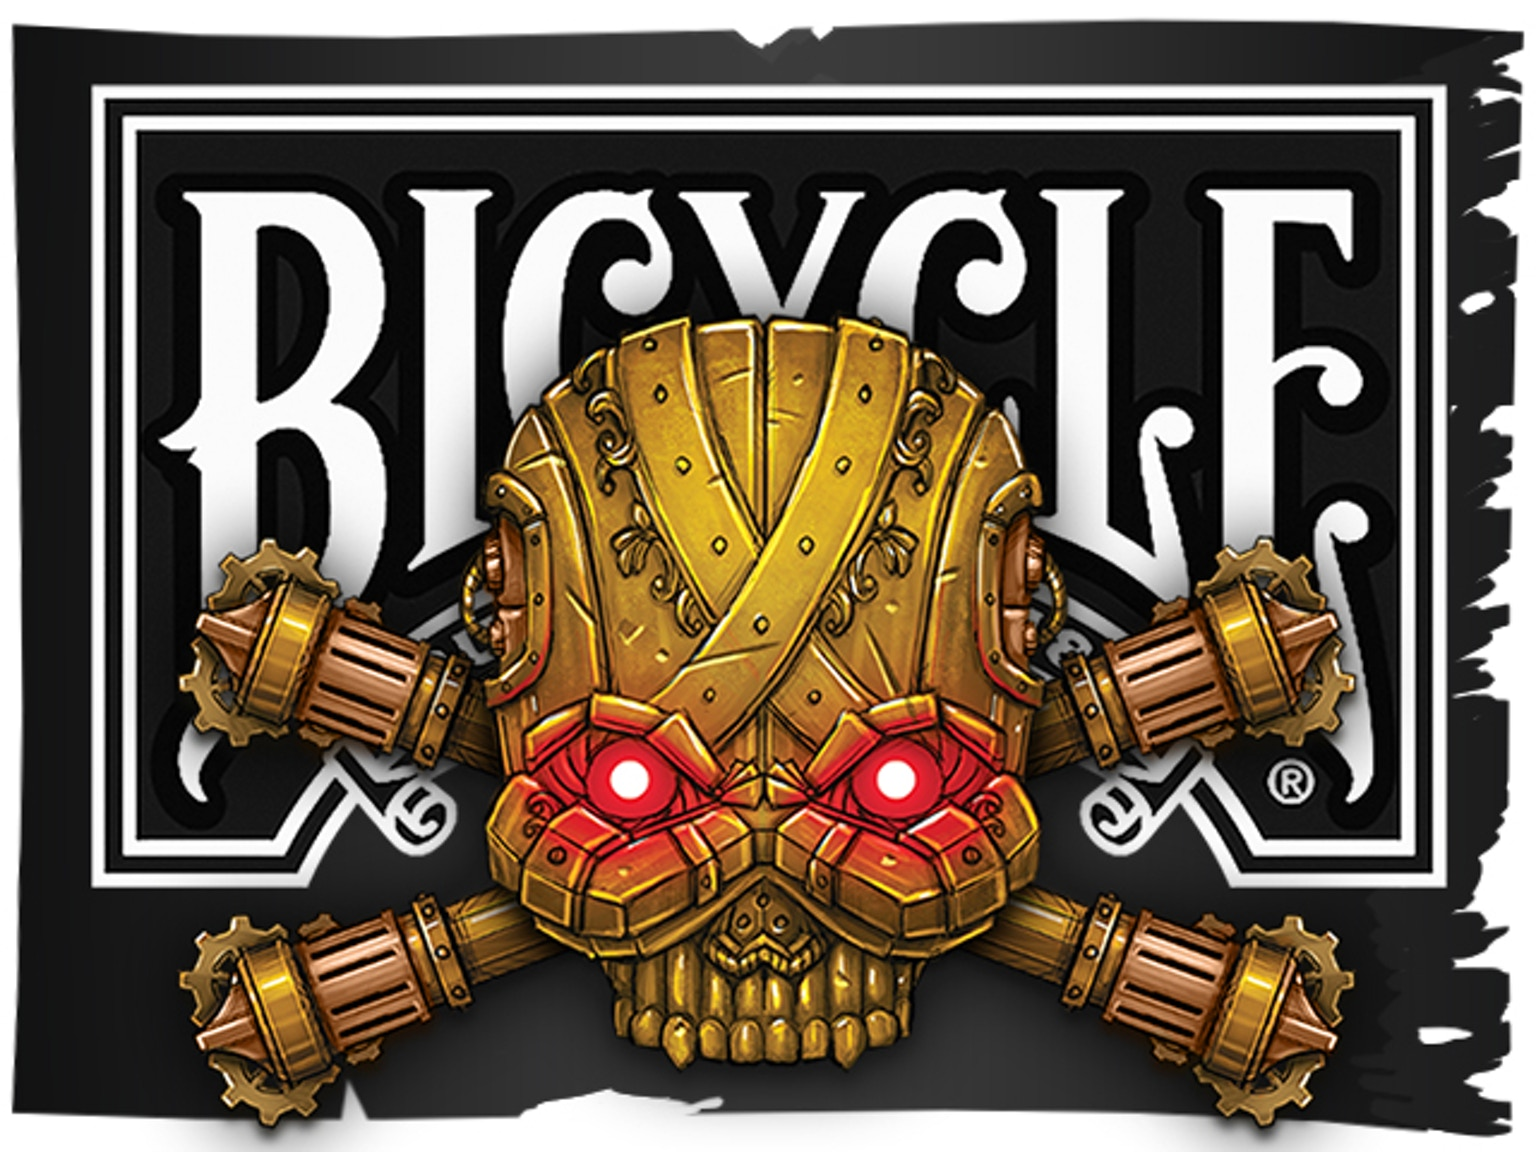 Kickstarter: Bicycle Steampunk Pirates Launches with Mass Appeal